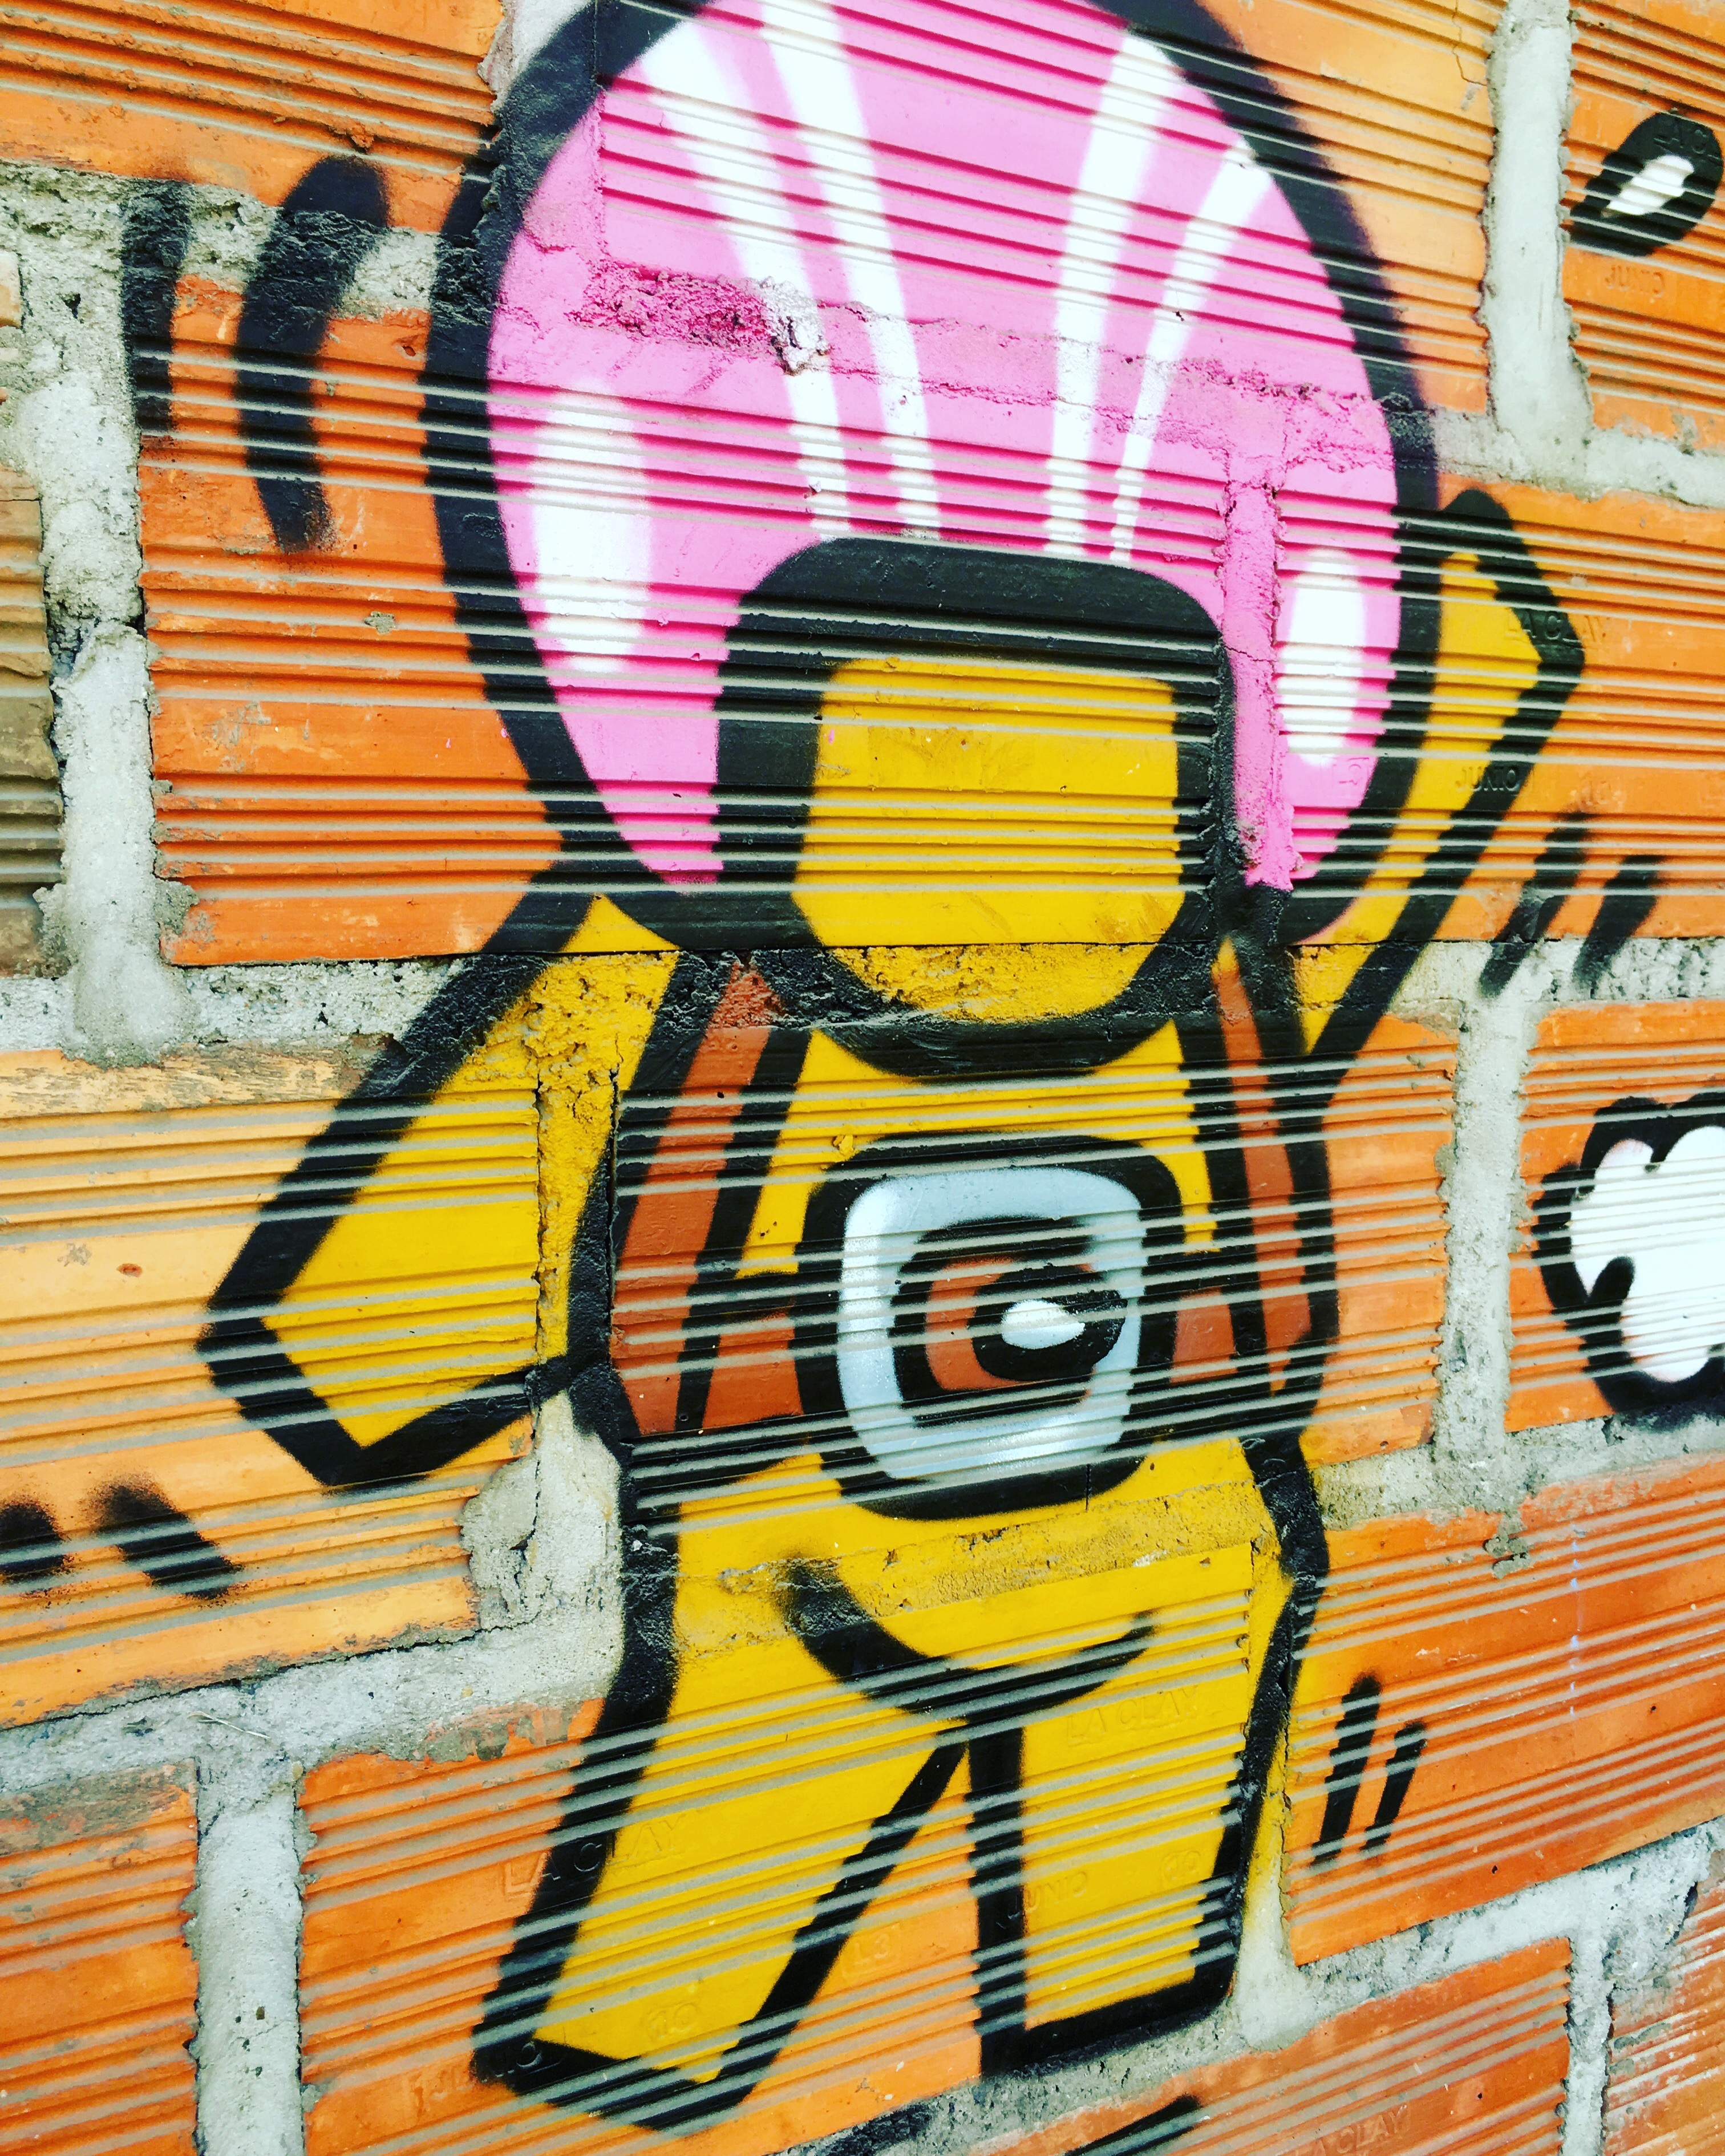 Through the Lens of an iPhone: Street Art | Pb